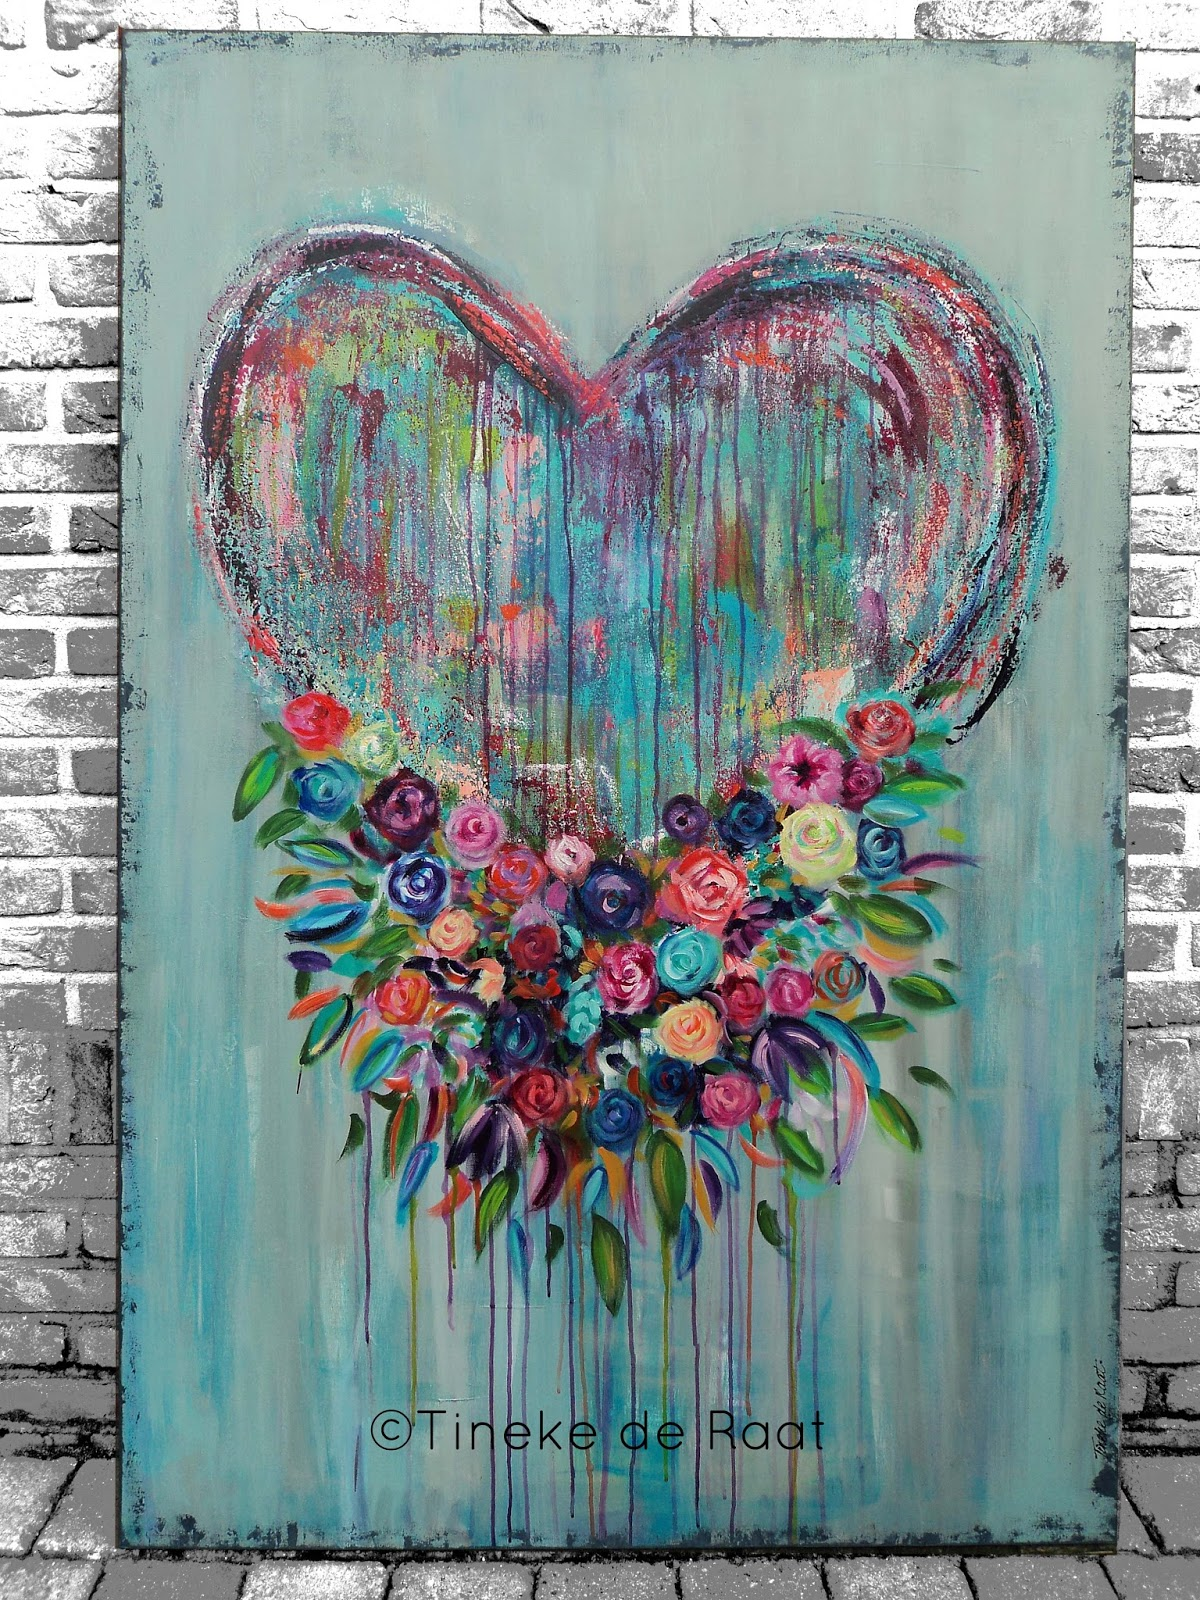 Tineke de raat love is the finest flower that blooms in god 39 s garden - Associatie van kleur e geen schilderij ...